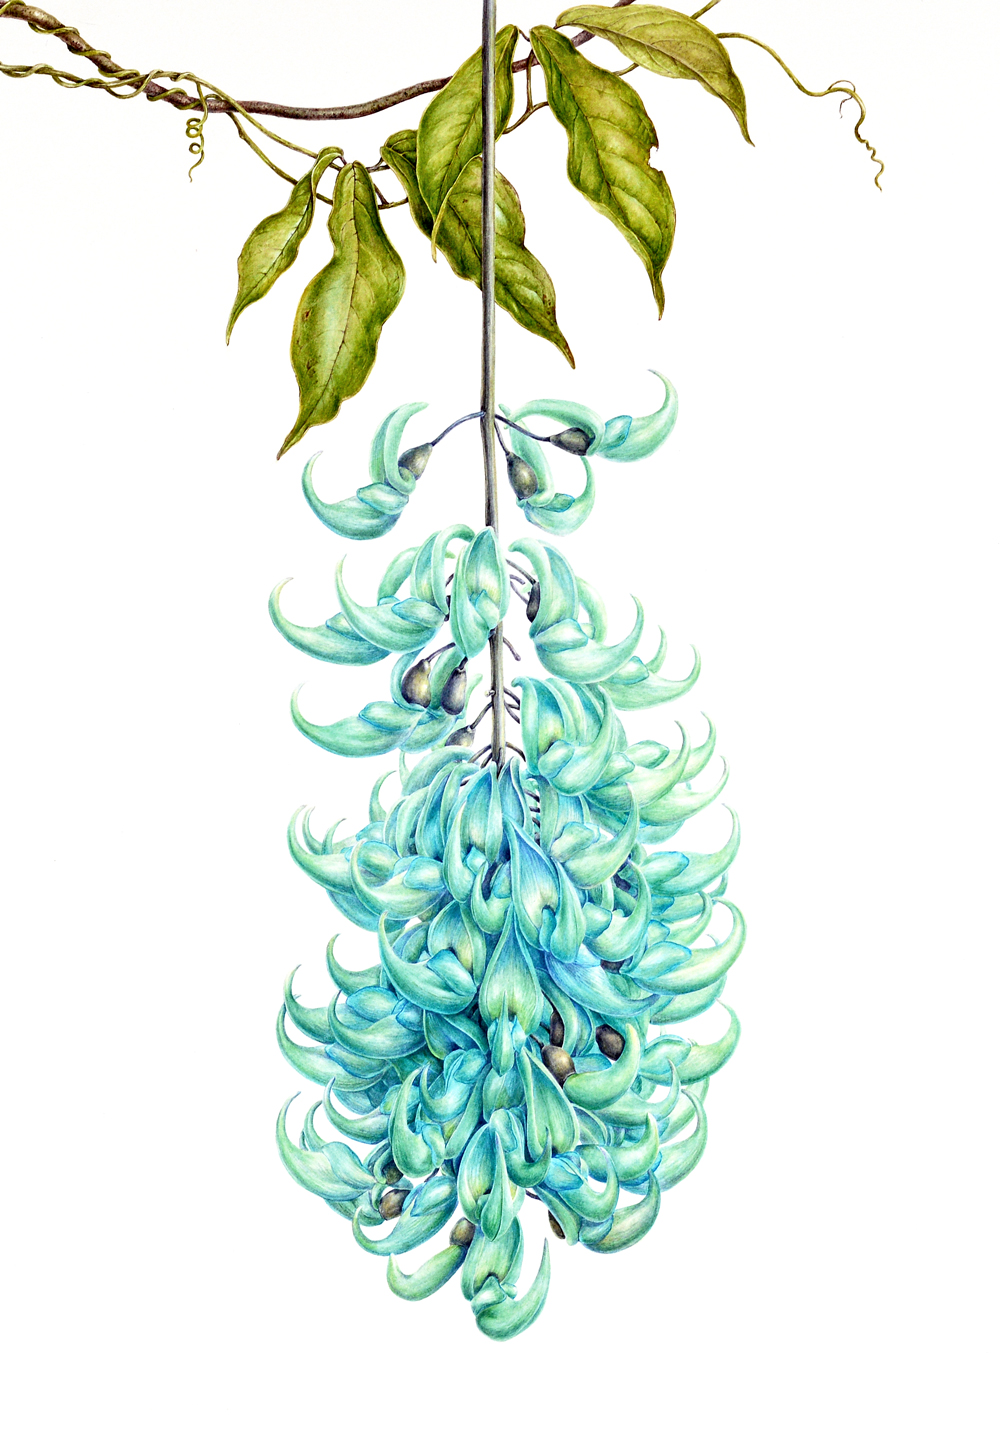 final JPEG image of jade vine painting saved for web